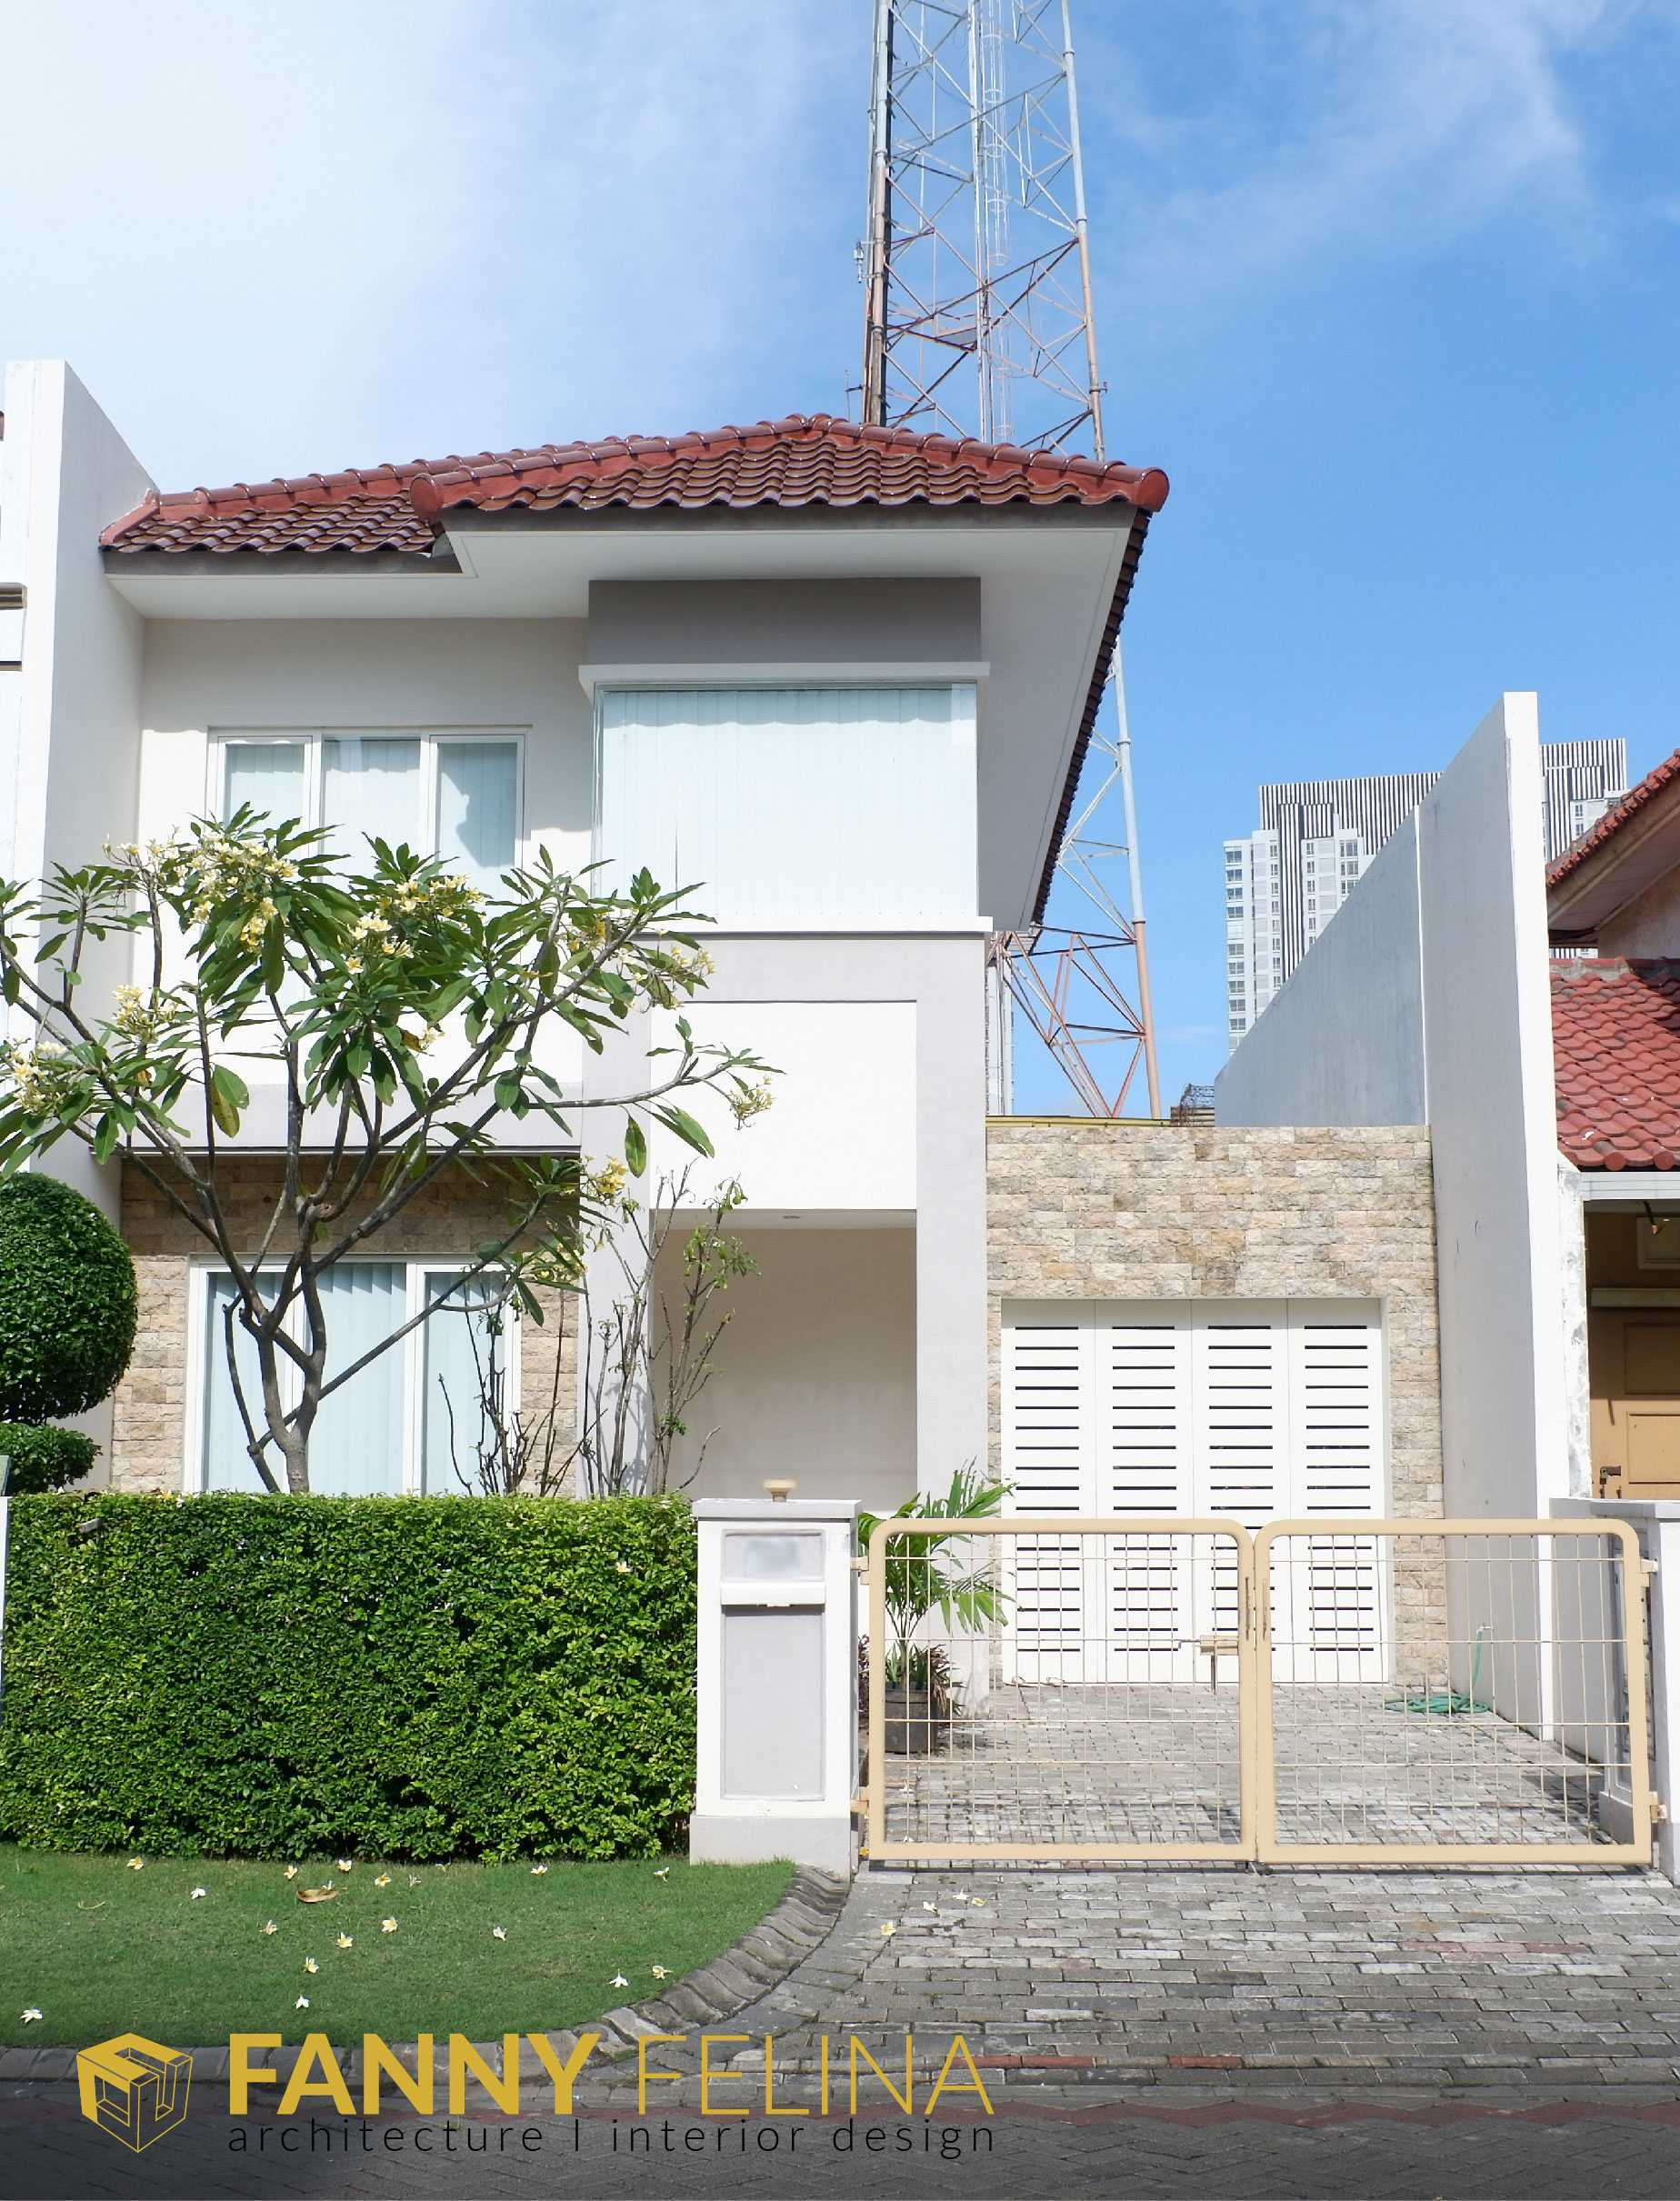 Fanny Felina Architecture & Interior Design Vv X House Surabaya, Surabaya City, East Java, Indonesia Surabaya, Surabaya City, East Java, Indonesia Fanny-Felina-Architecture-Interior-Design-Vv-X-House   50079